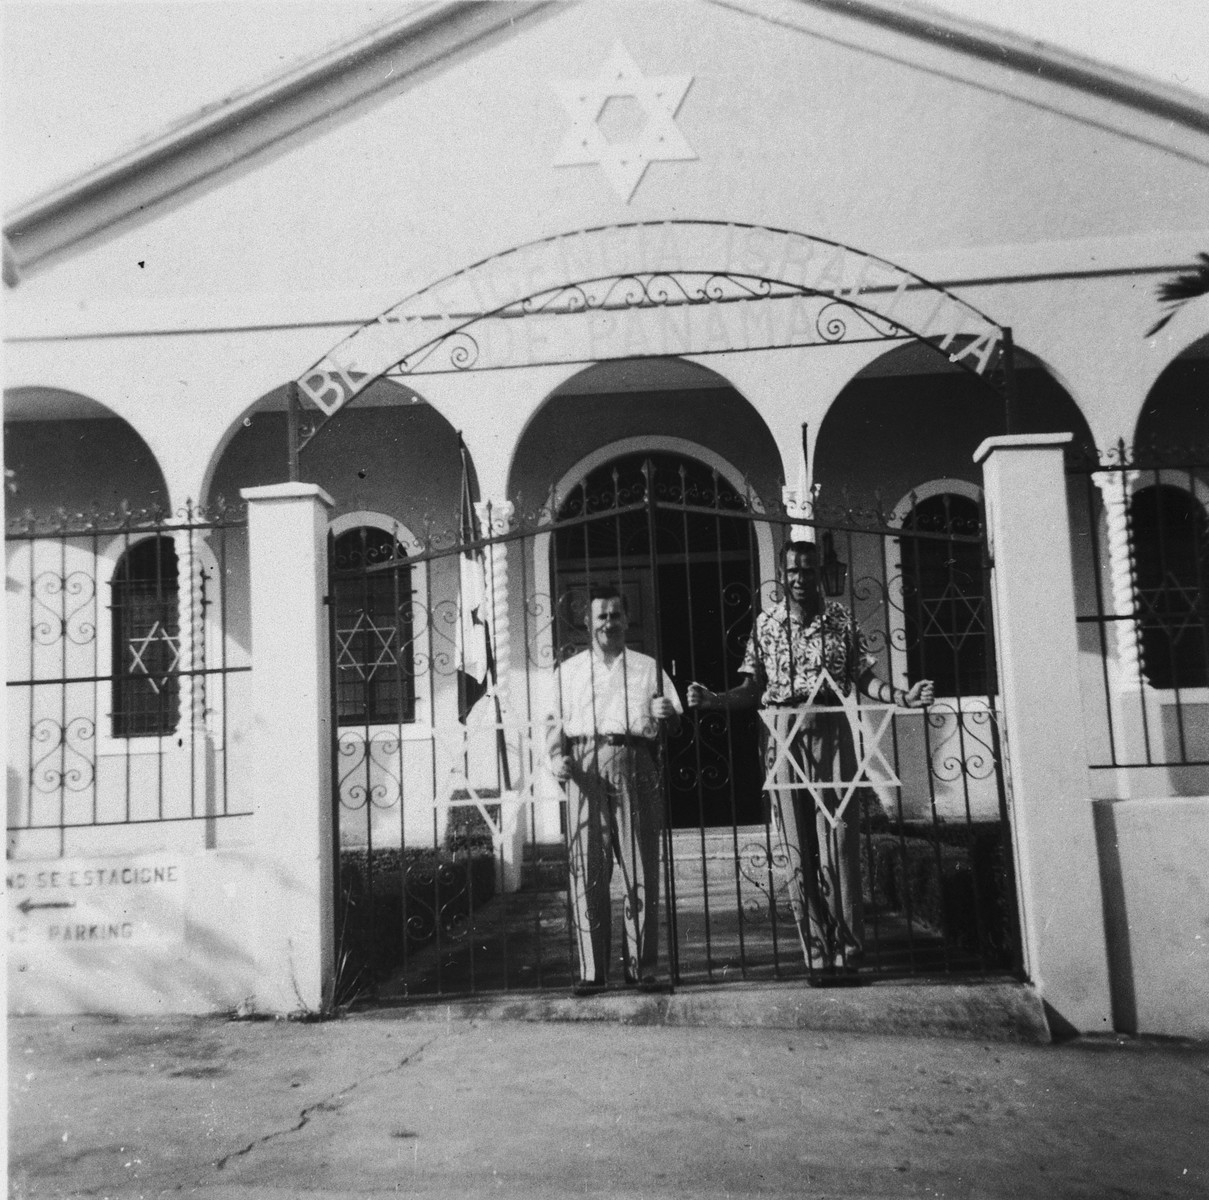 David Bayer, a Jewish DP immigrant from Poland, stands at the gate to a synagogue in Panama City.